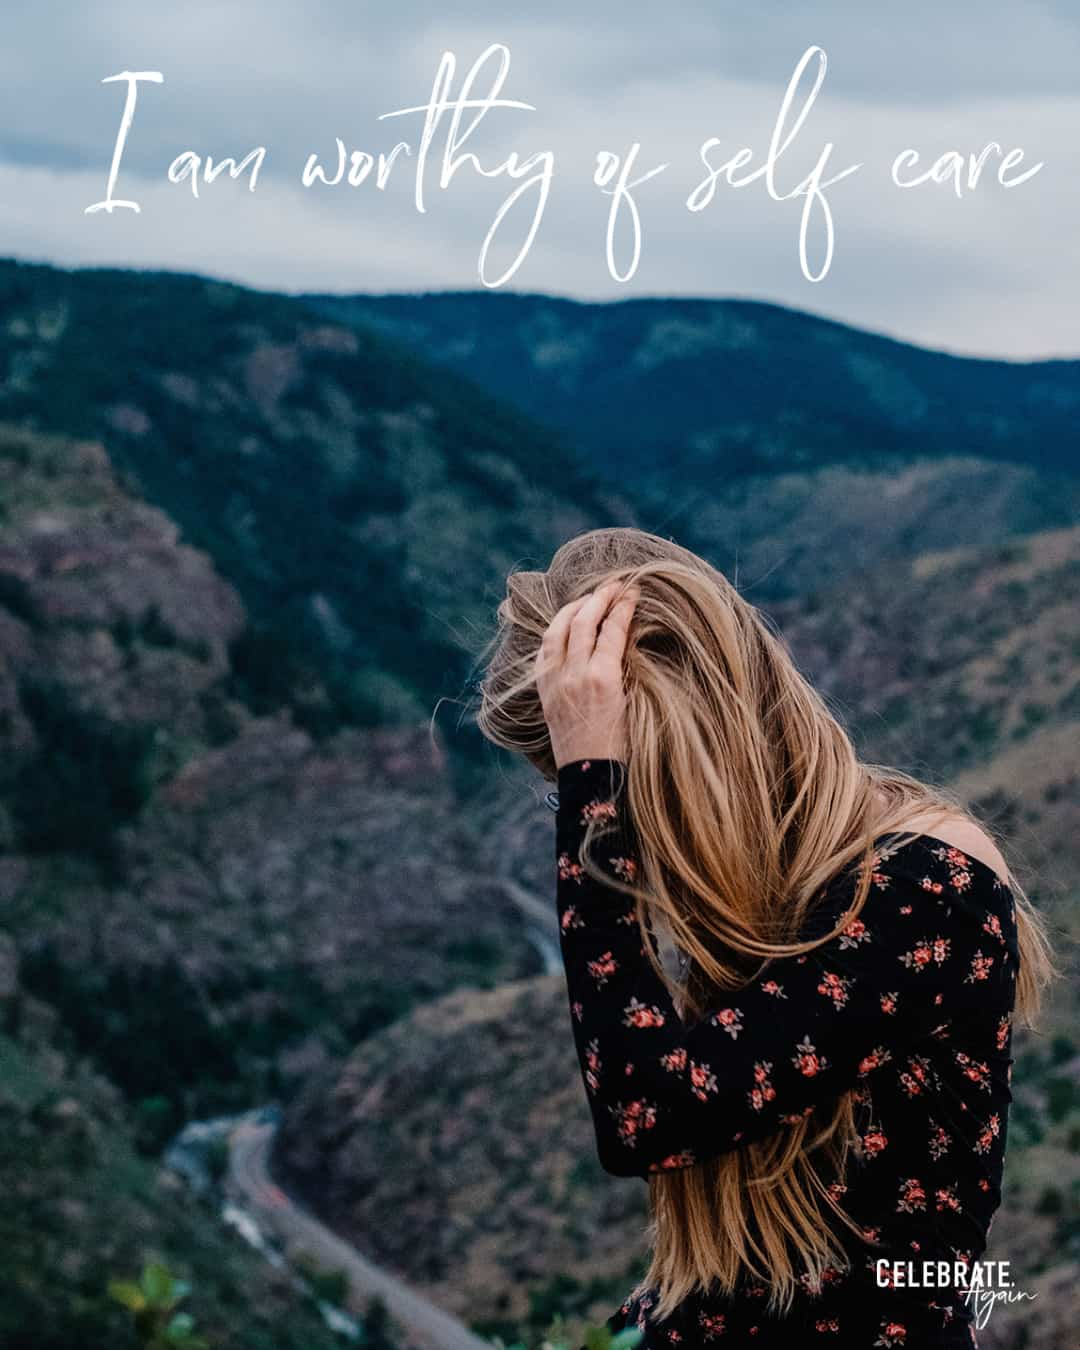 """I am worthy of self care"" as a mom quote by Celebrate Again view of a woman pulling her hair back on the top of a mountain cliff"